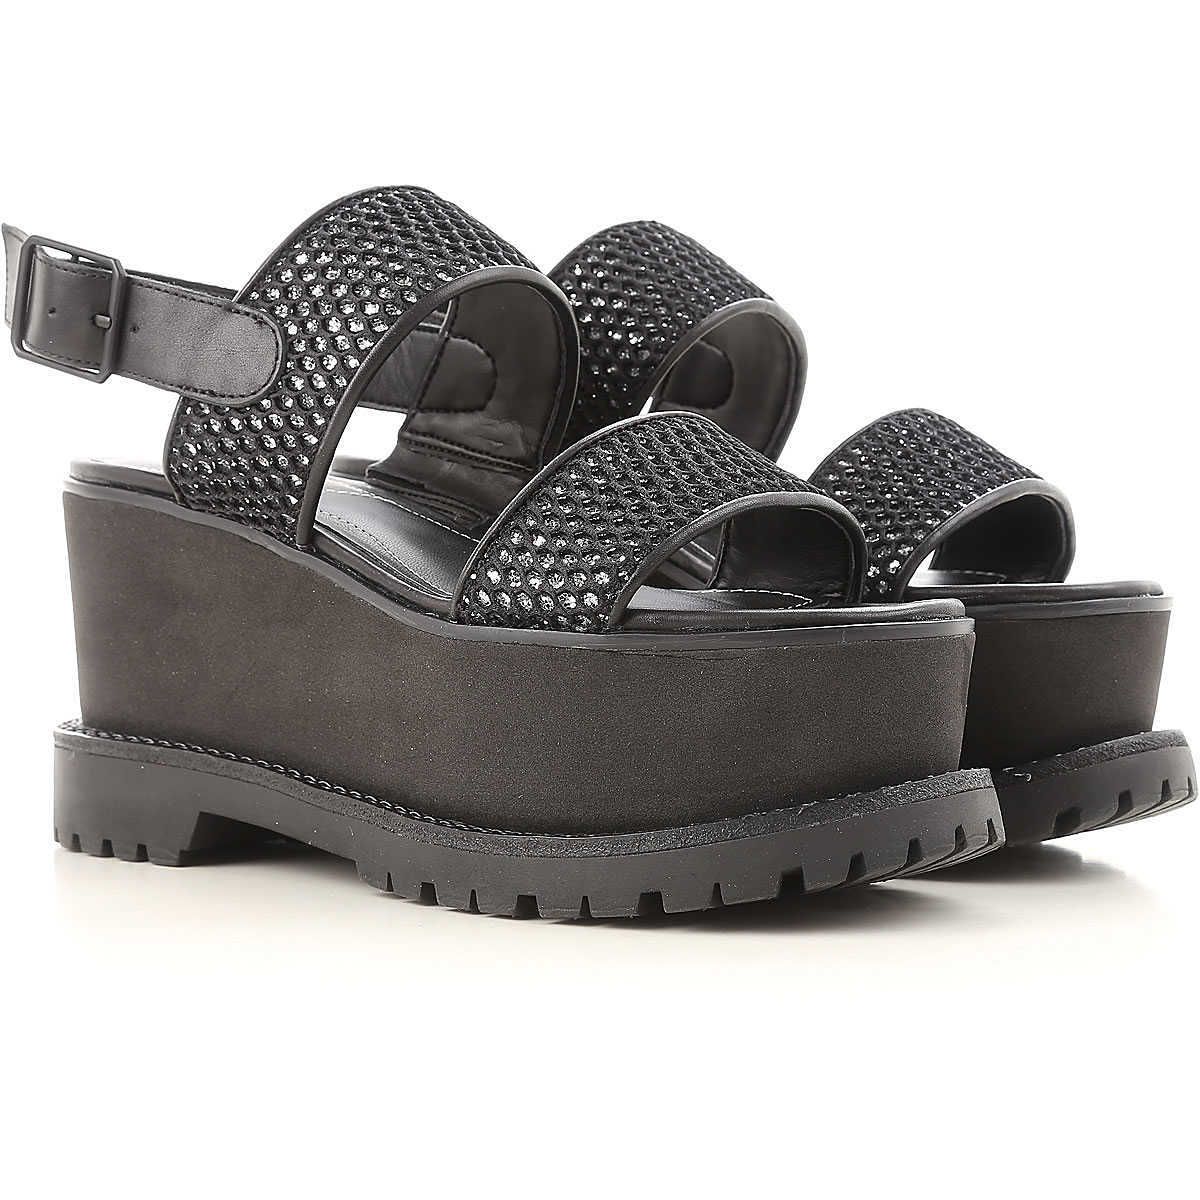 Kendall Kylie Wedges for Women On Sale in Outlet Black - GOOFASH